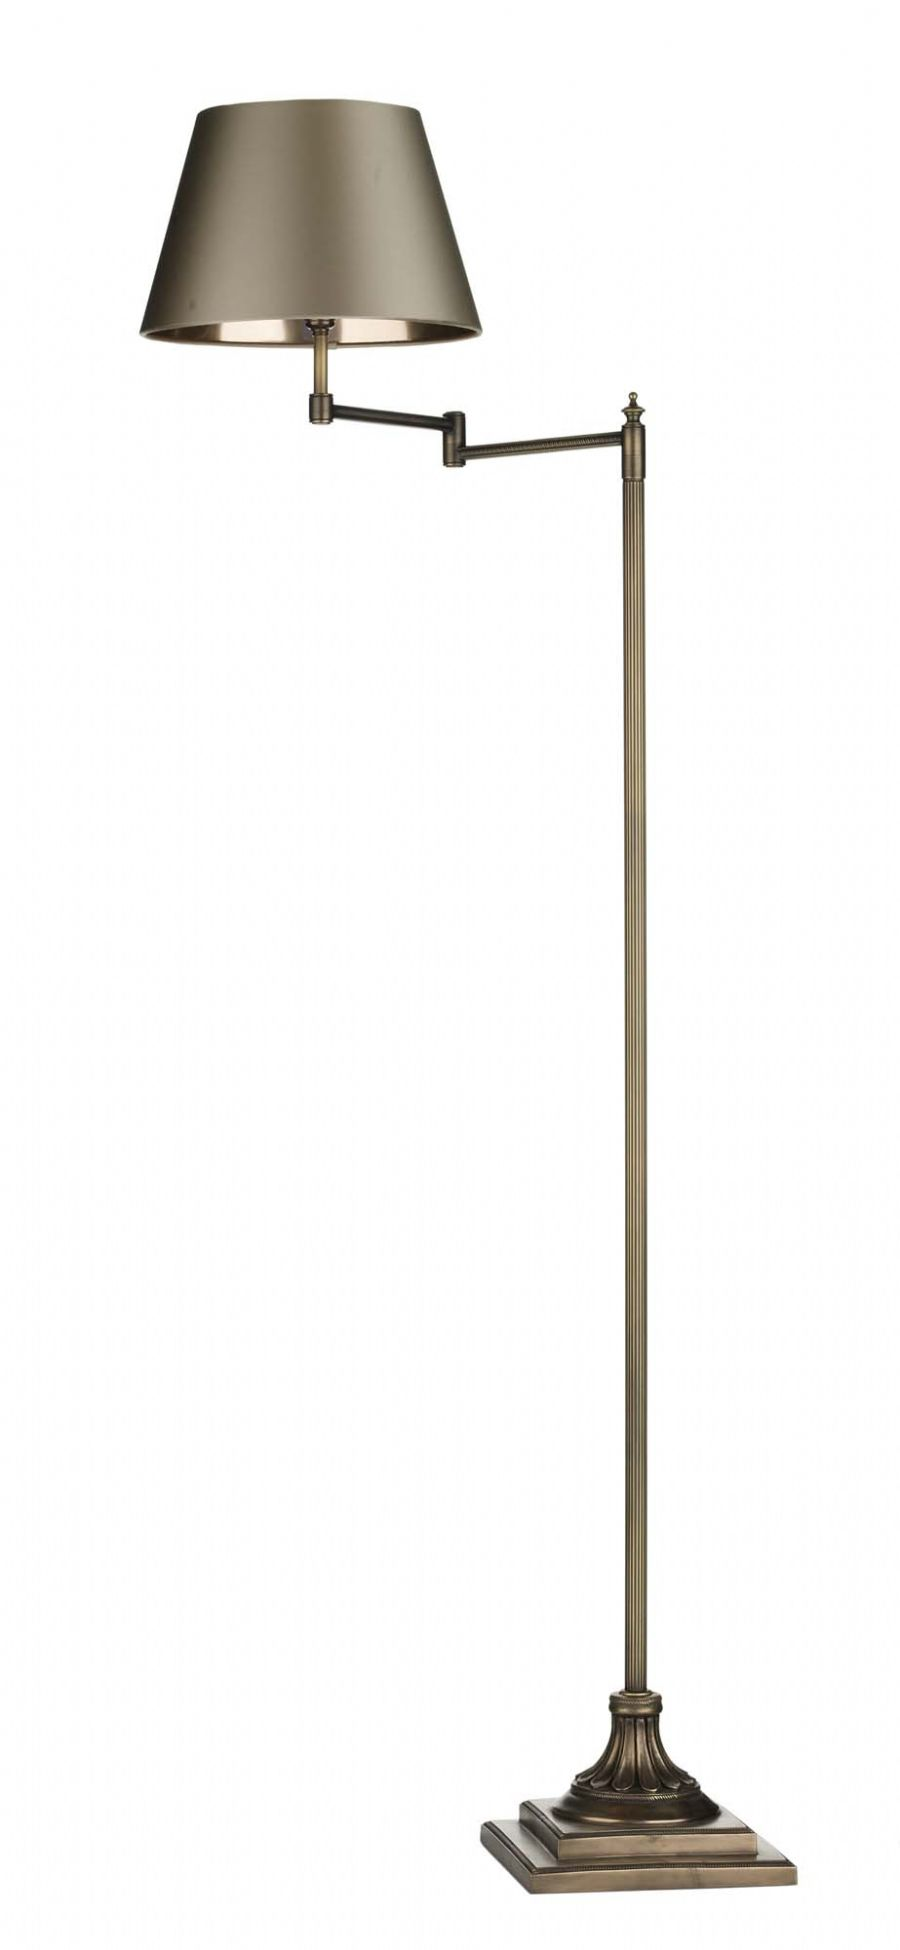 David Hunt Pimlico Floor Lamp Left Facing PIM4975